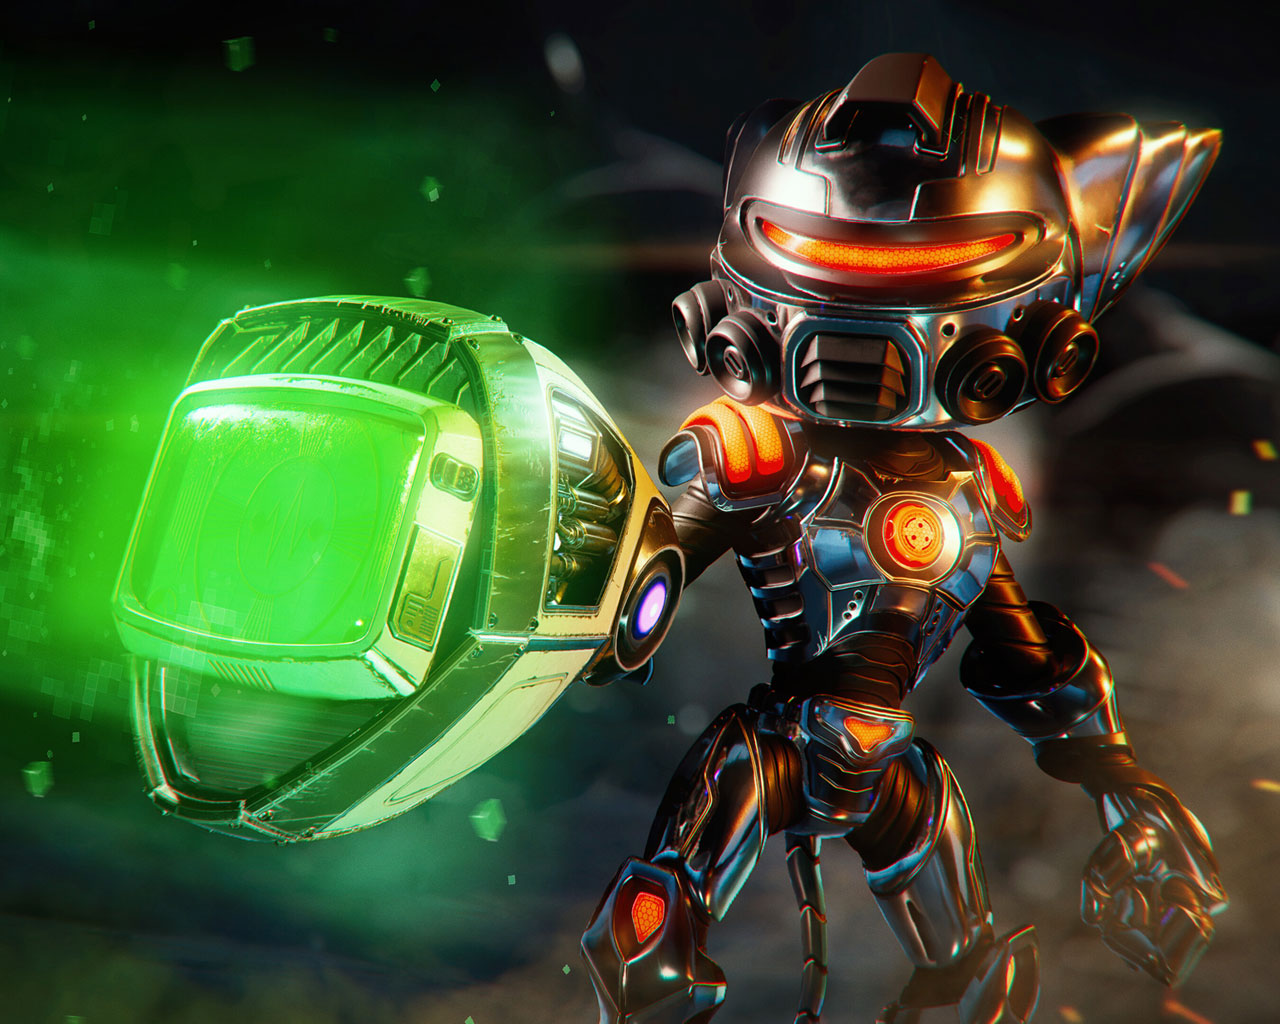 Free Ratchet & Clank: Rift Apart Wallpaper in 1280x1024